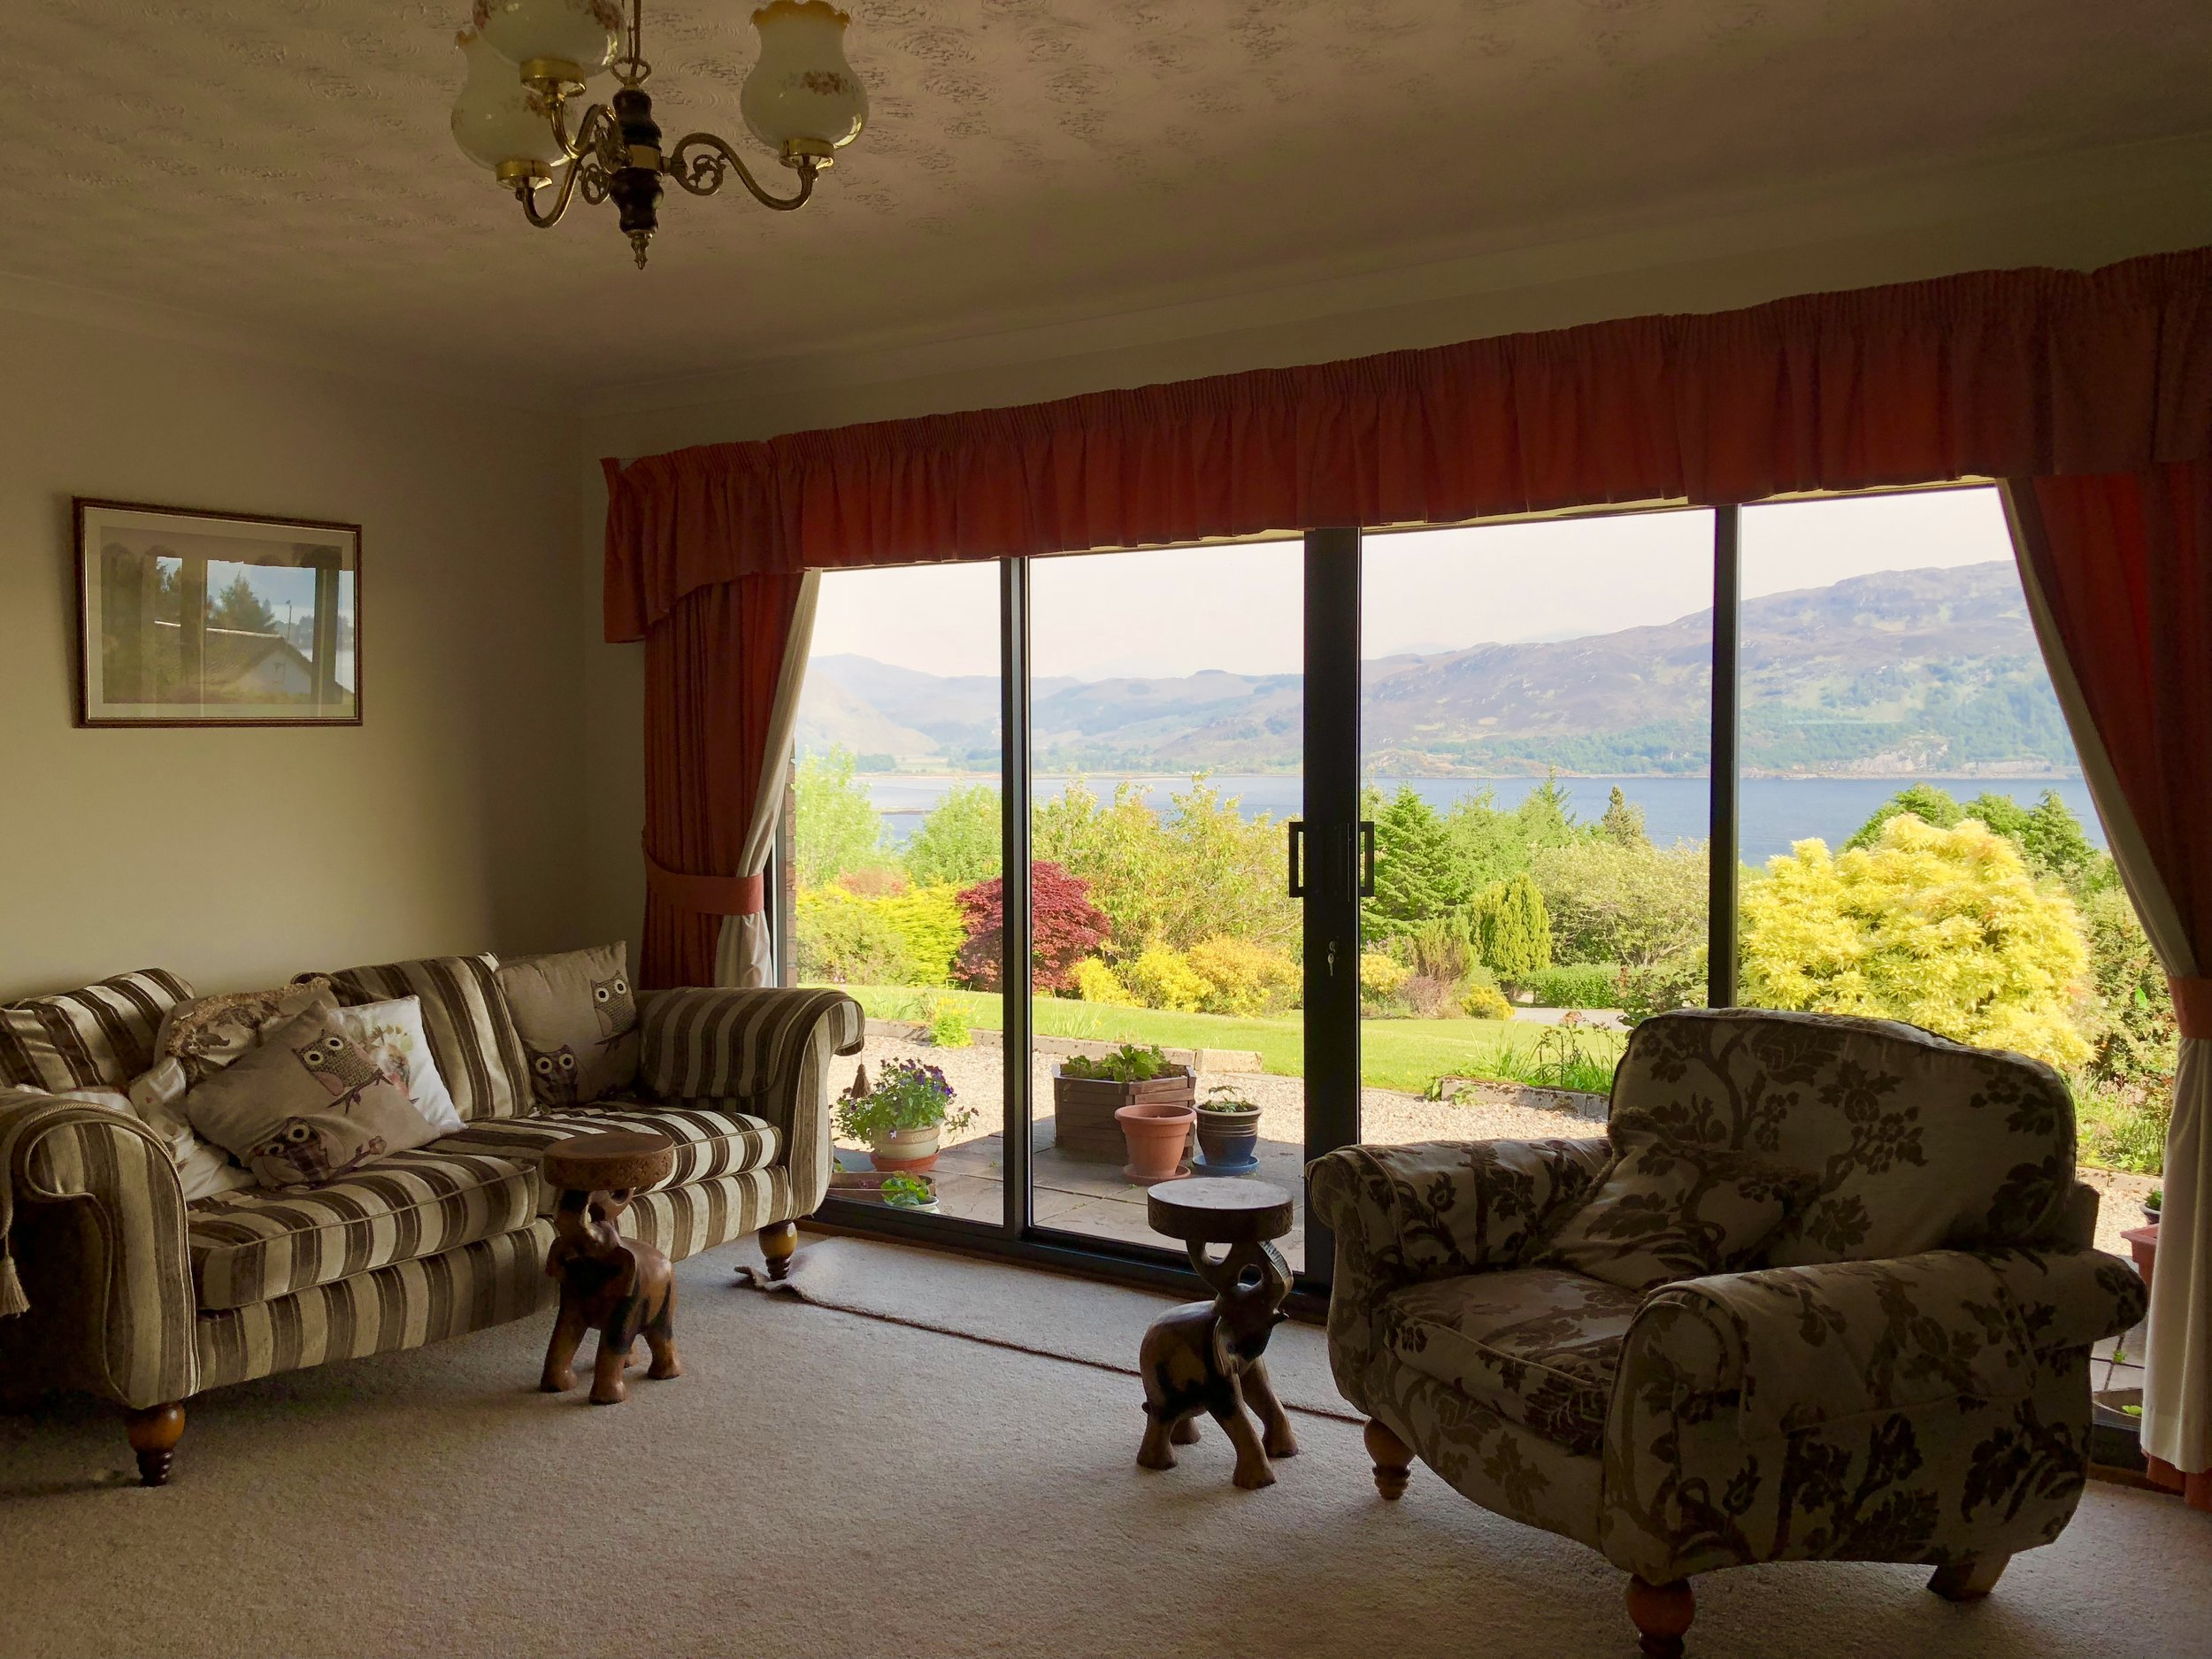 A view of Loch Carron from Chuillin Bed and Breakfast.